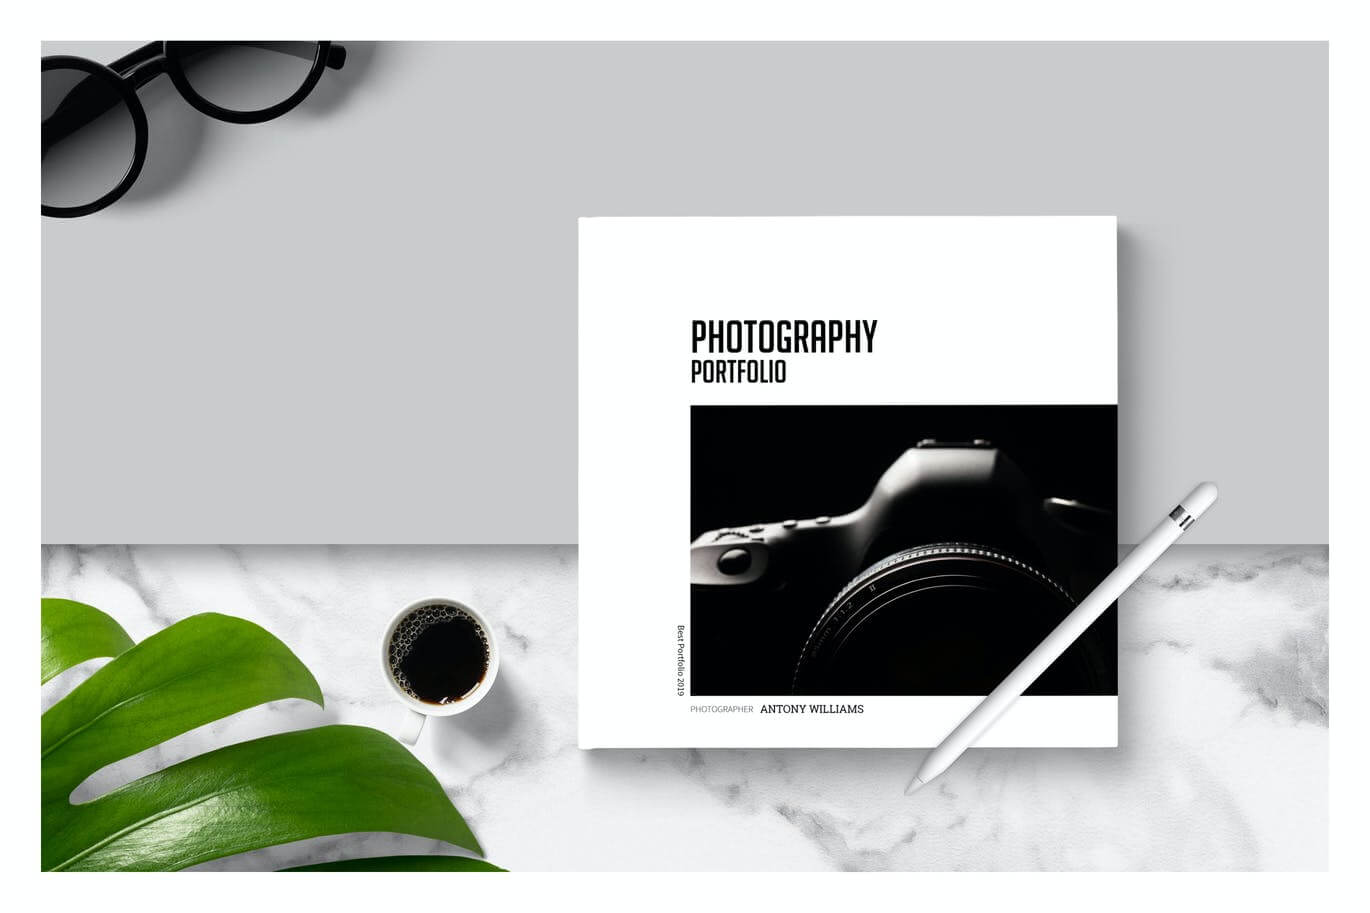 Photography Portfolio Voucher Template (1)